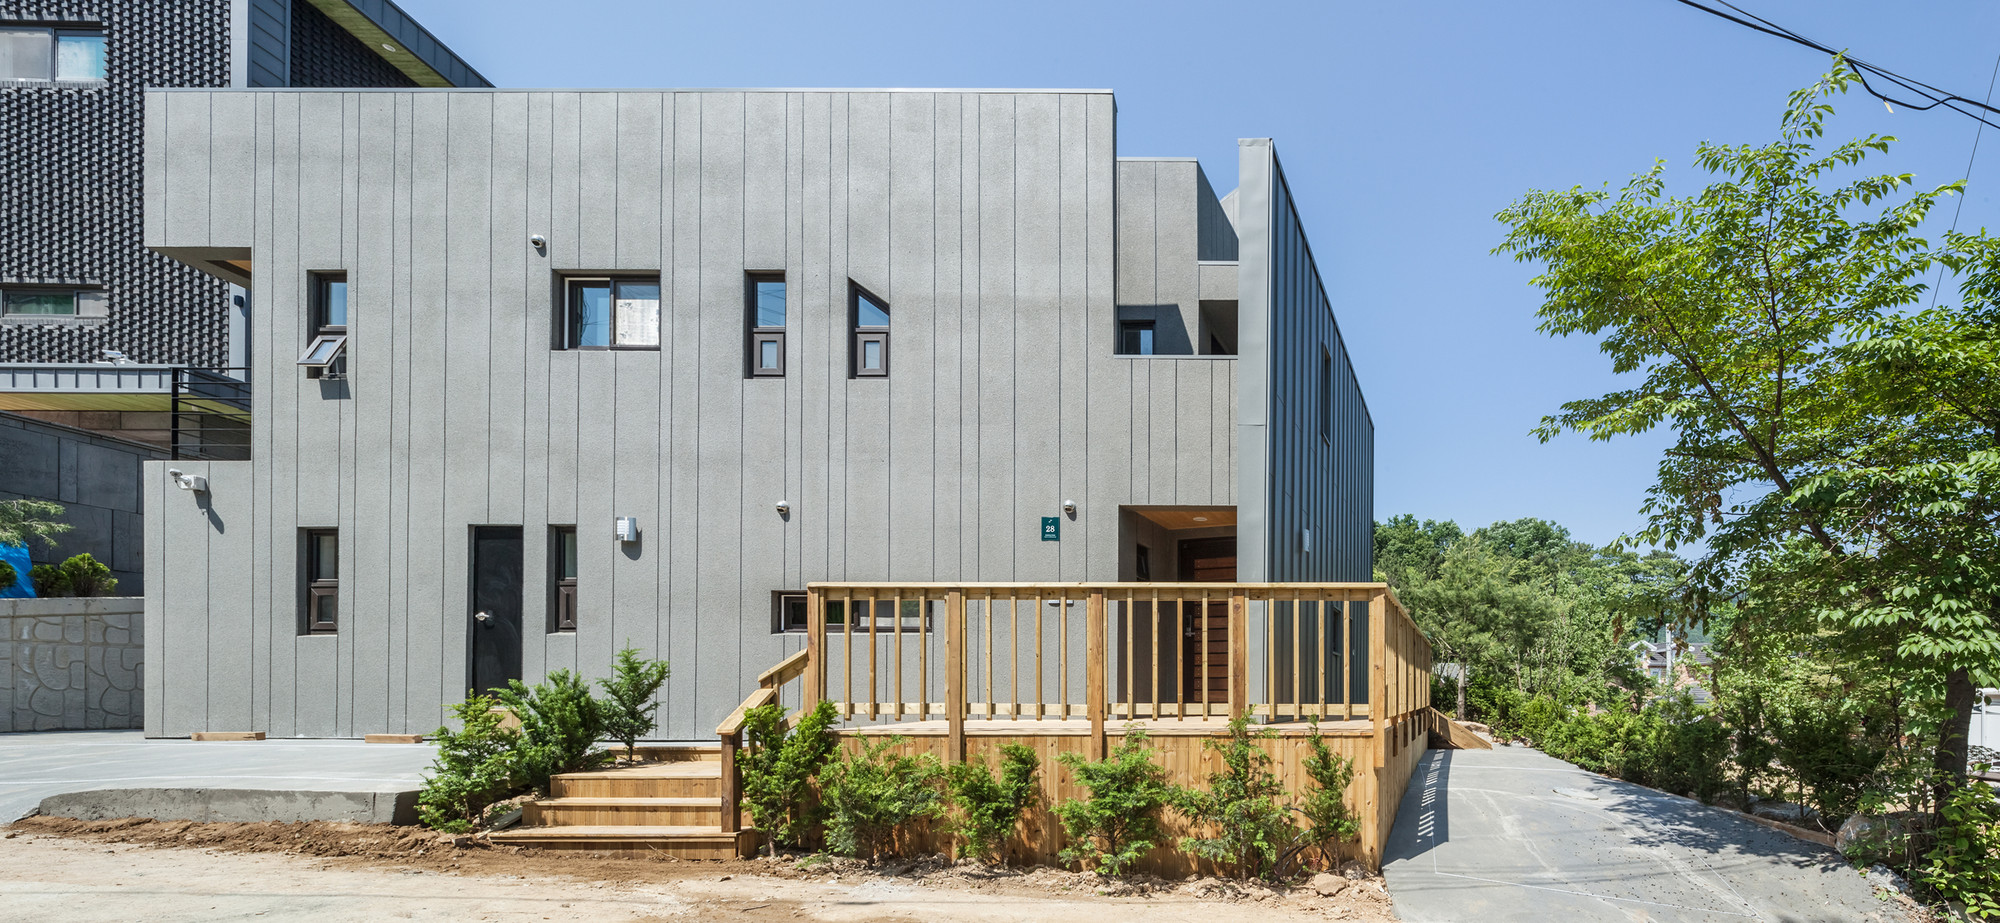 Sly House / URCODE Architecture, © Kyung-Sub Shin